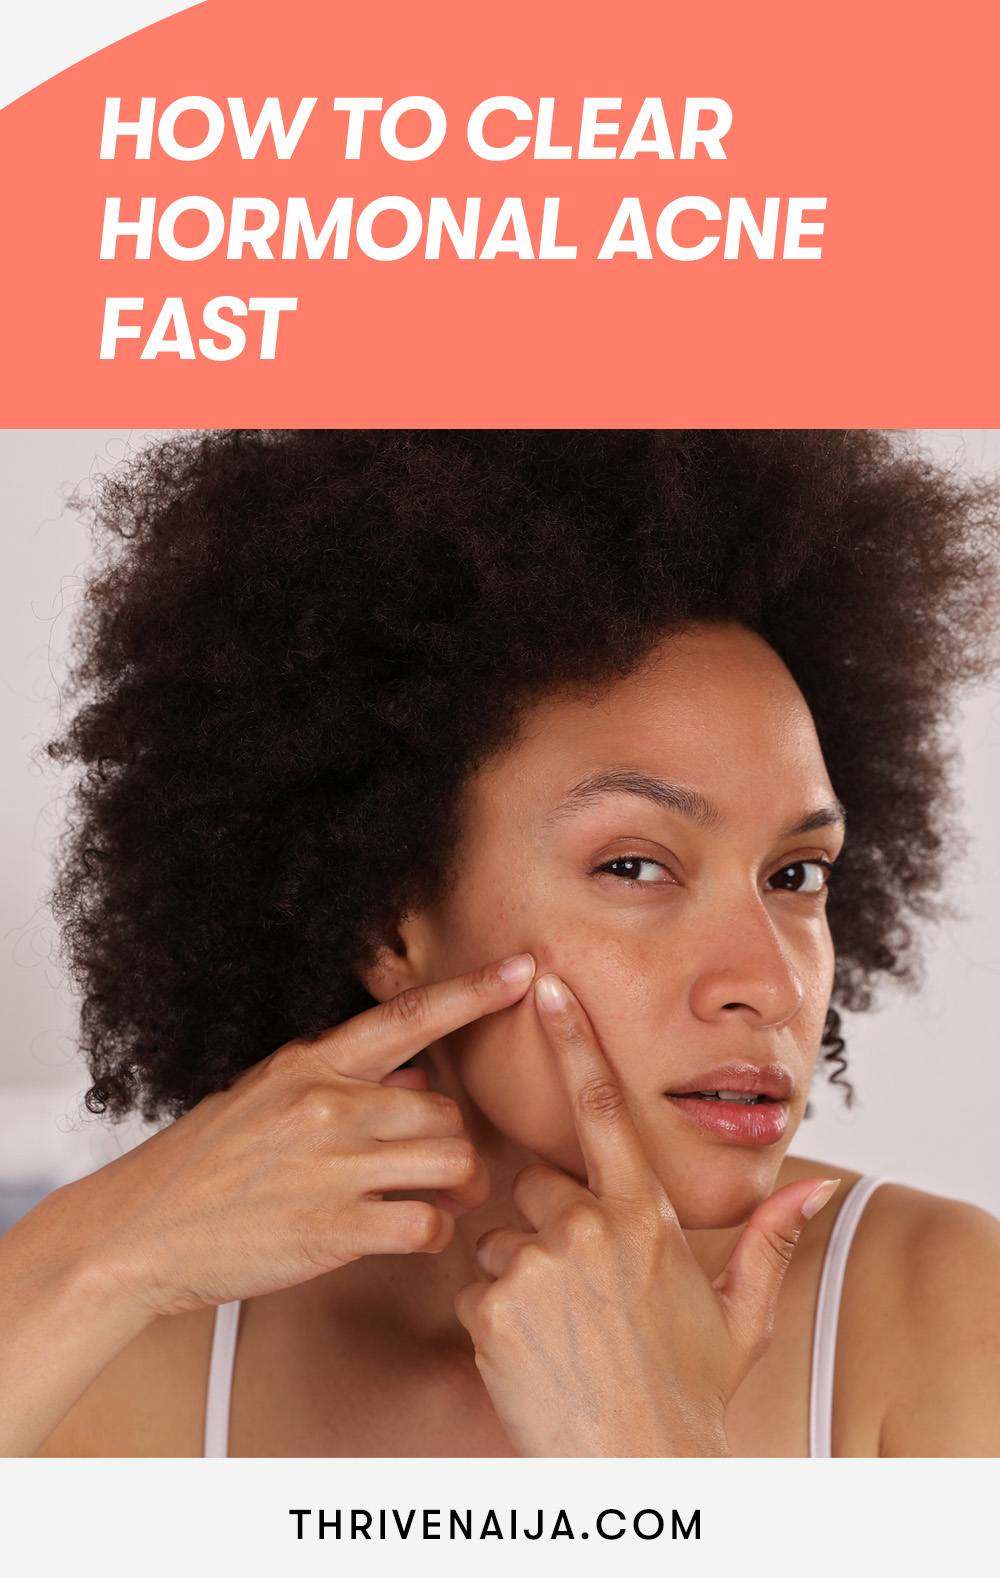 How to clear hormonal acne fast